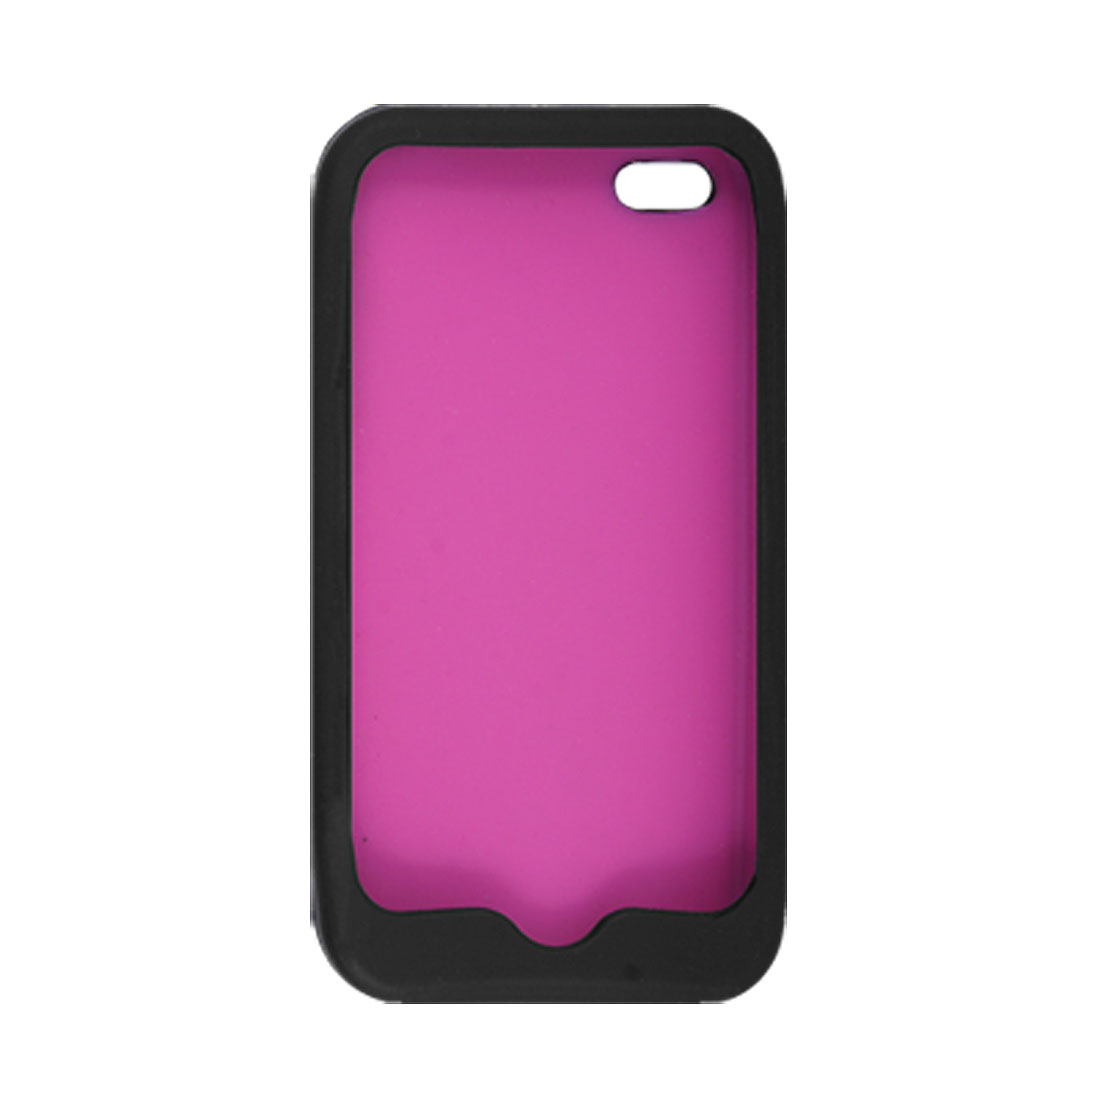 Fuchsia Fish Scales Black Silicone Soft Cover for iPhone 4 4G